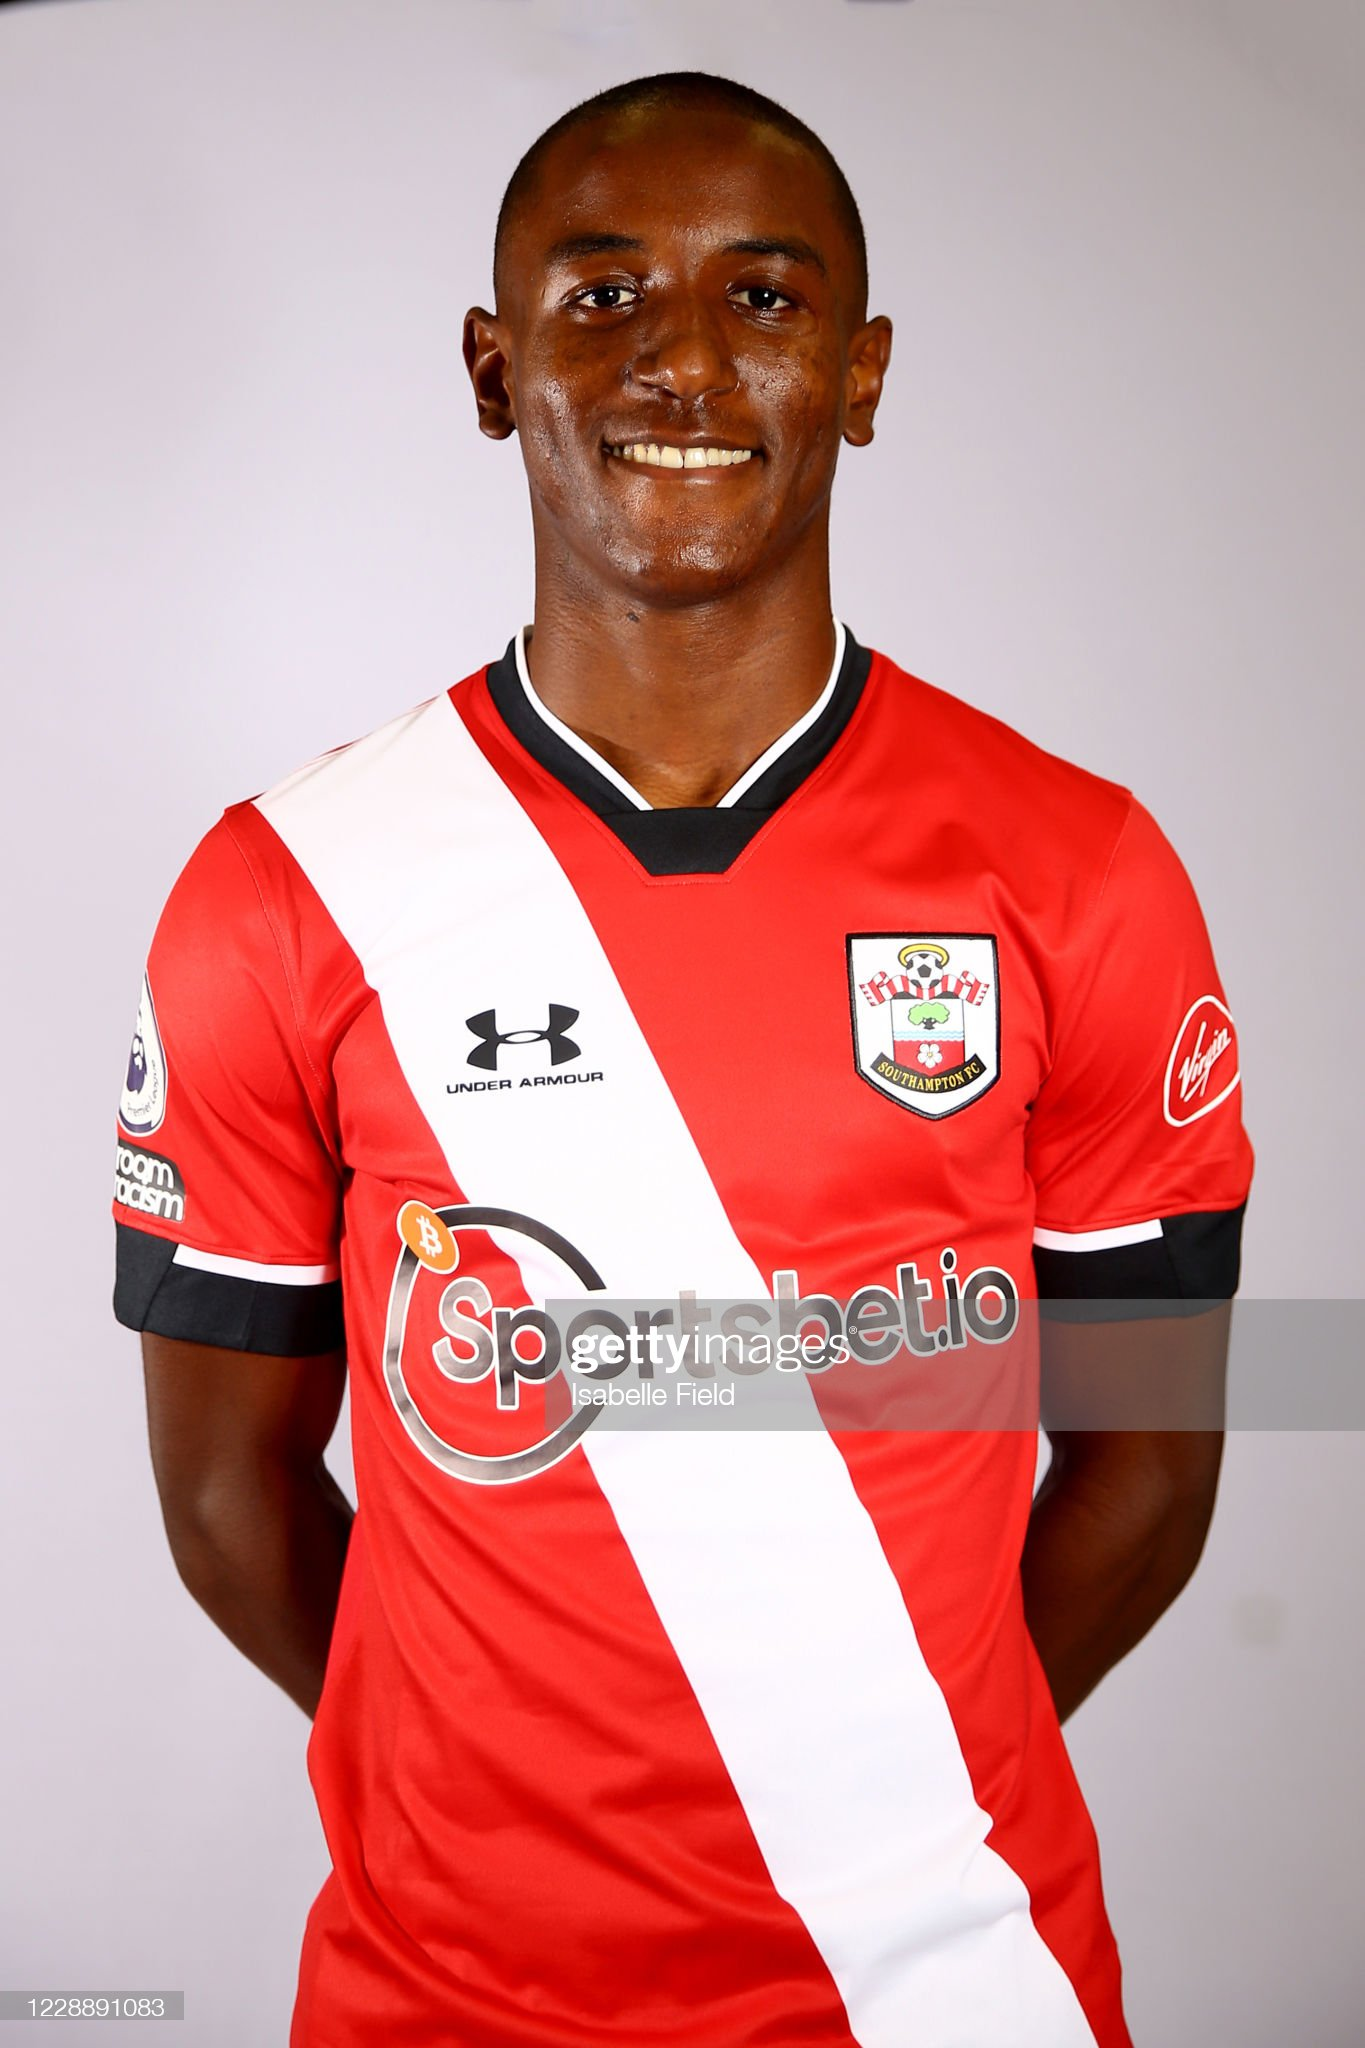 https://media.gettyimages.com/photos/southampton-fcs-latest-signing-ibrahima-diallo-pictured-on-october-4-picture-id1228891083?s=2048x2048